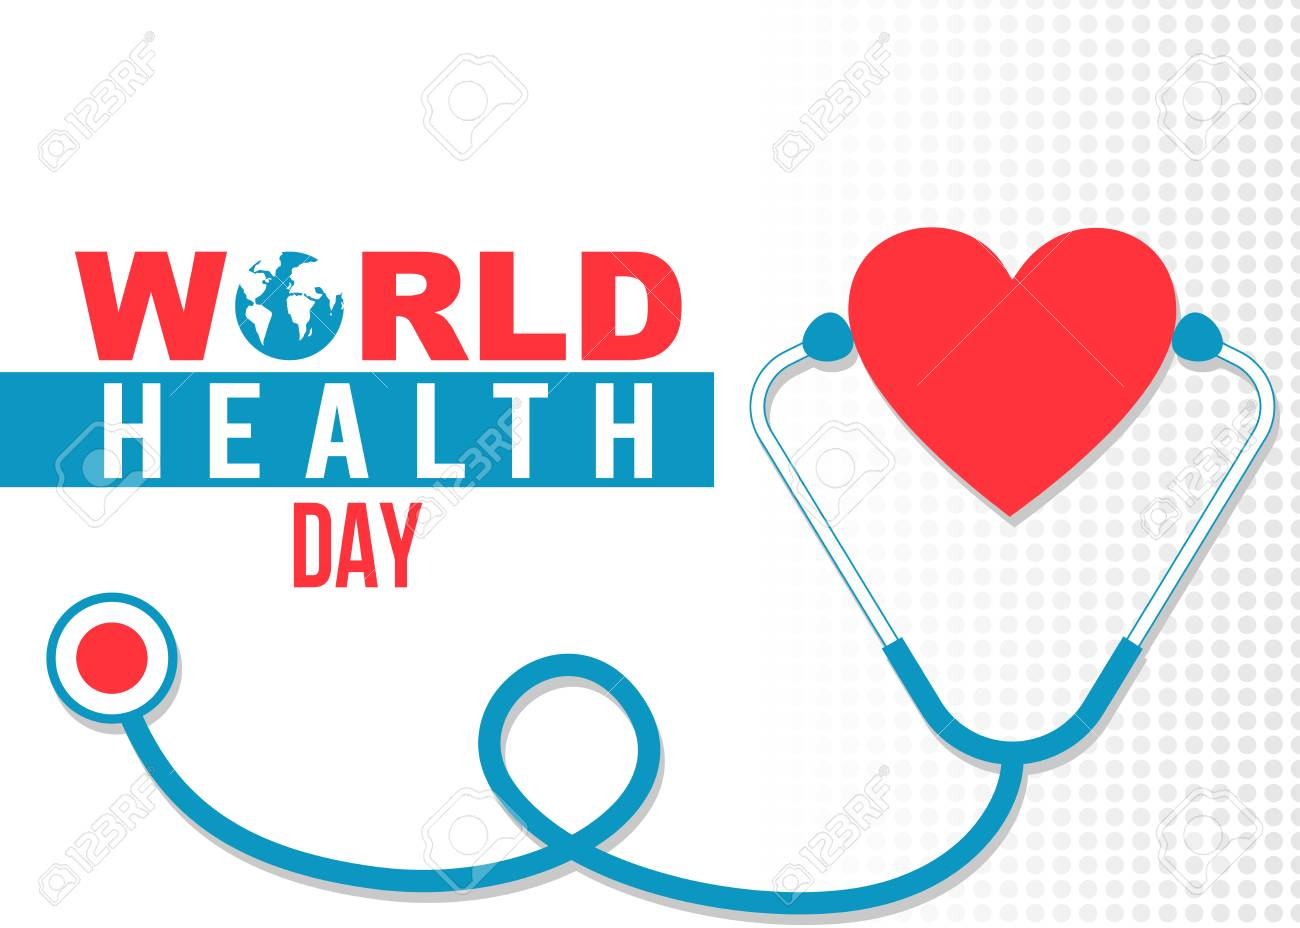 World Health Day Banner With Stethoscope And Heart Royalty Free Cliparts Vectors And Stock Illustration Image 74299707